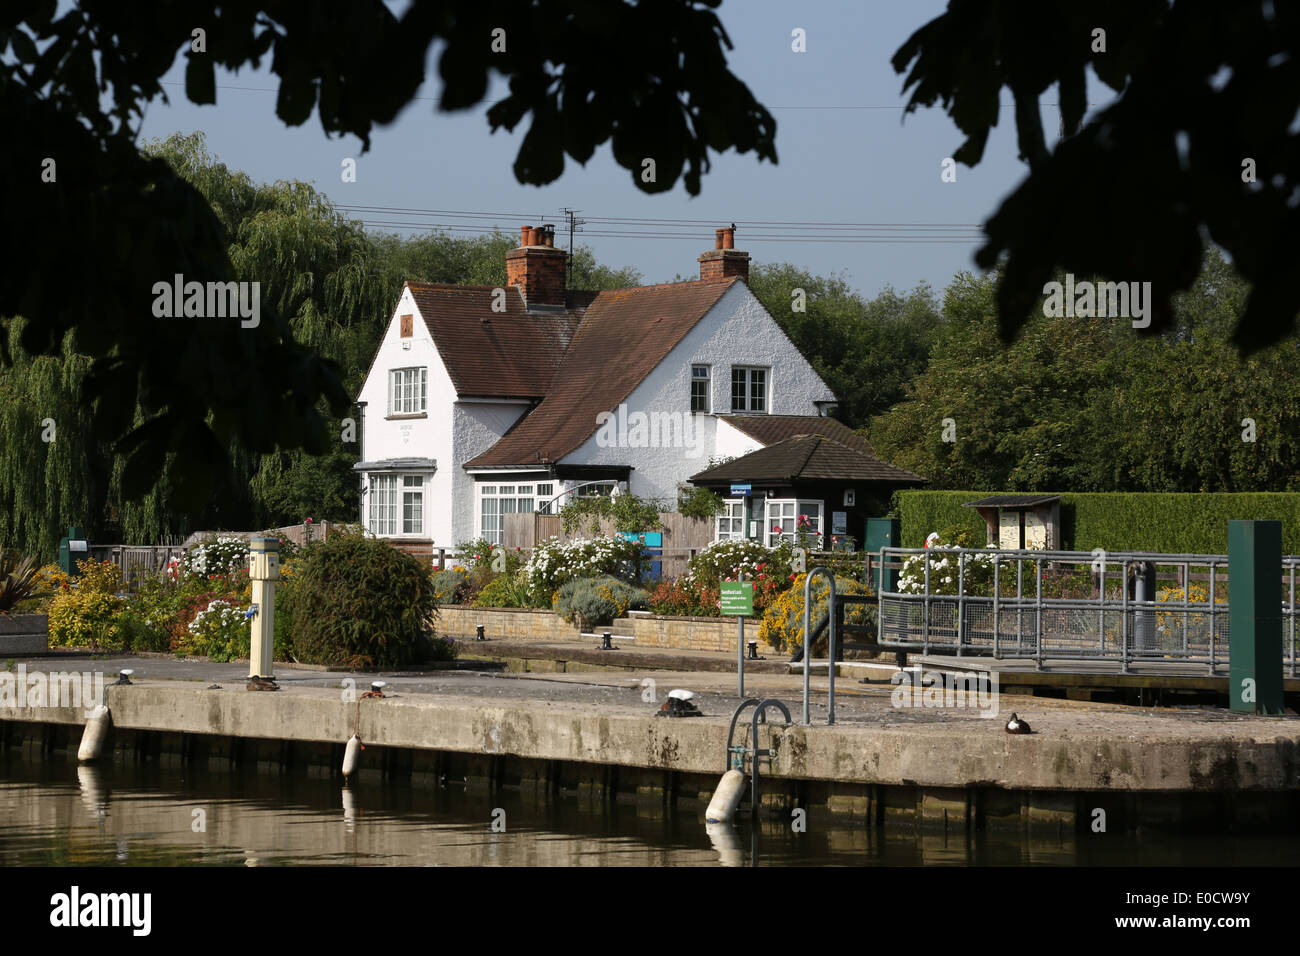 Lock keepers cottage, Sandford Lock, River Thames, Oxfordshire - Stock Image